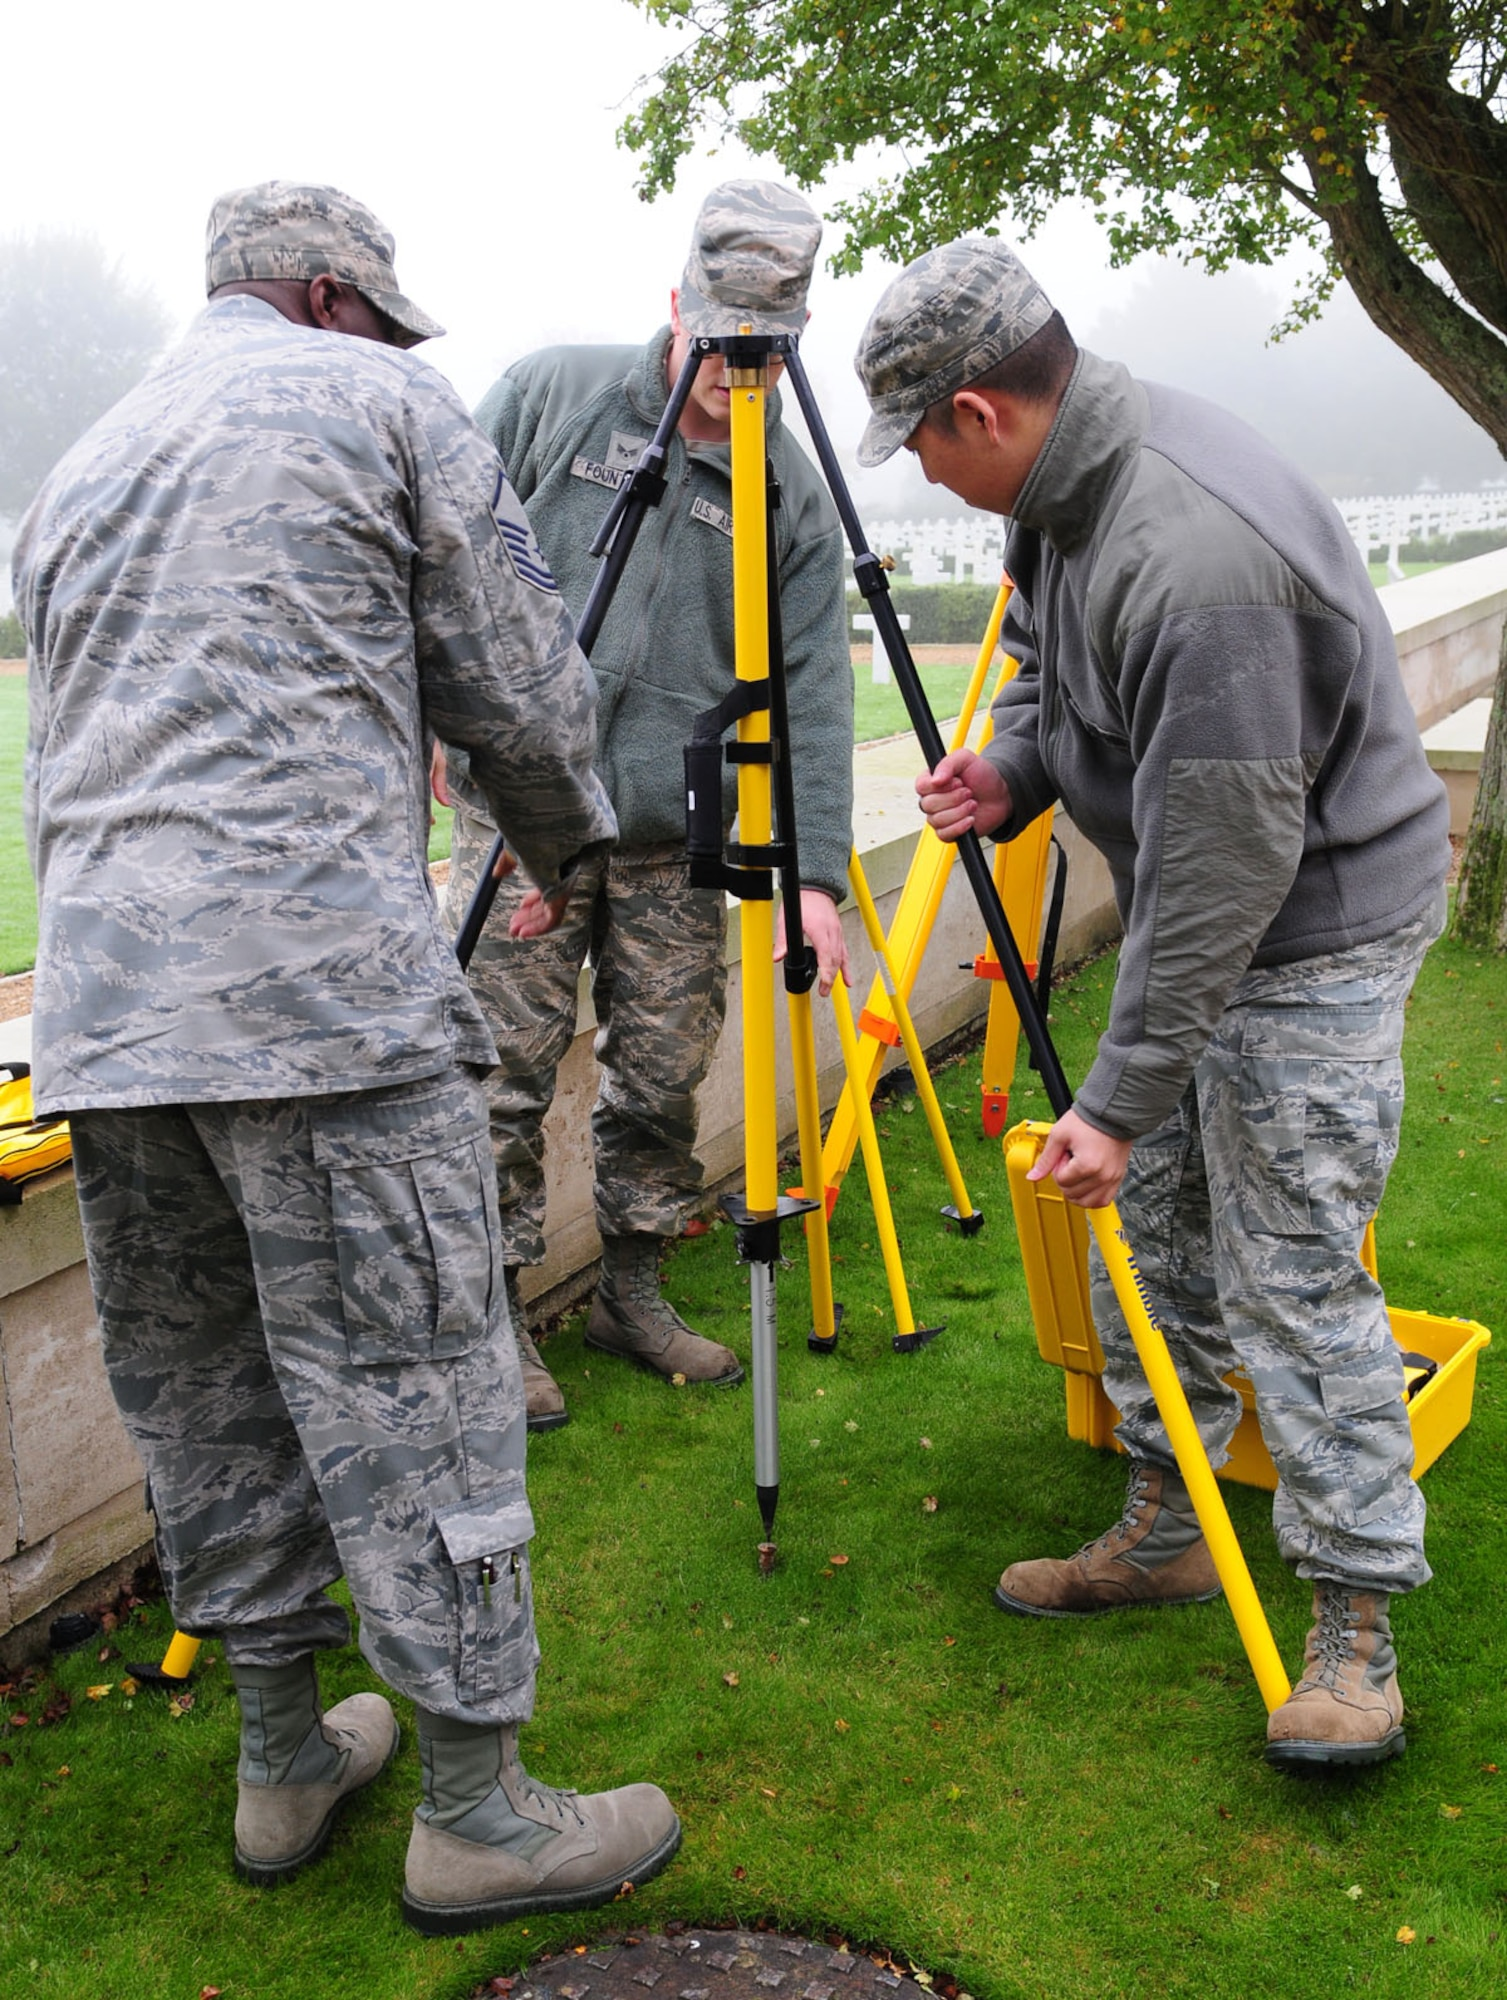 Master Sgt. Solomon Vincent, left,  assists Senior Airman Logan Fountaine, center, and Senior Airman Young Park, as they set up a quadpod ready to attach an antenna Oct. 16, 2013, at Madingley American Cemetery near Cambridge, England. The Airmen were taking GPS readings to annotate the exact location of each individual headstone. This equipment served as a base station, which collects data from 24 GPS satellites in orbit. All the data from the project will be made into an electronic map that allows families and friends of those lost in World War II to pinpoint the location of their resting place here.Vincent is a 100th Civil Engineer Squadron engineering flight superintendent and Fountaine and Park are 100th CES engineering flight journeyman.